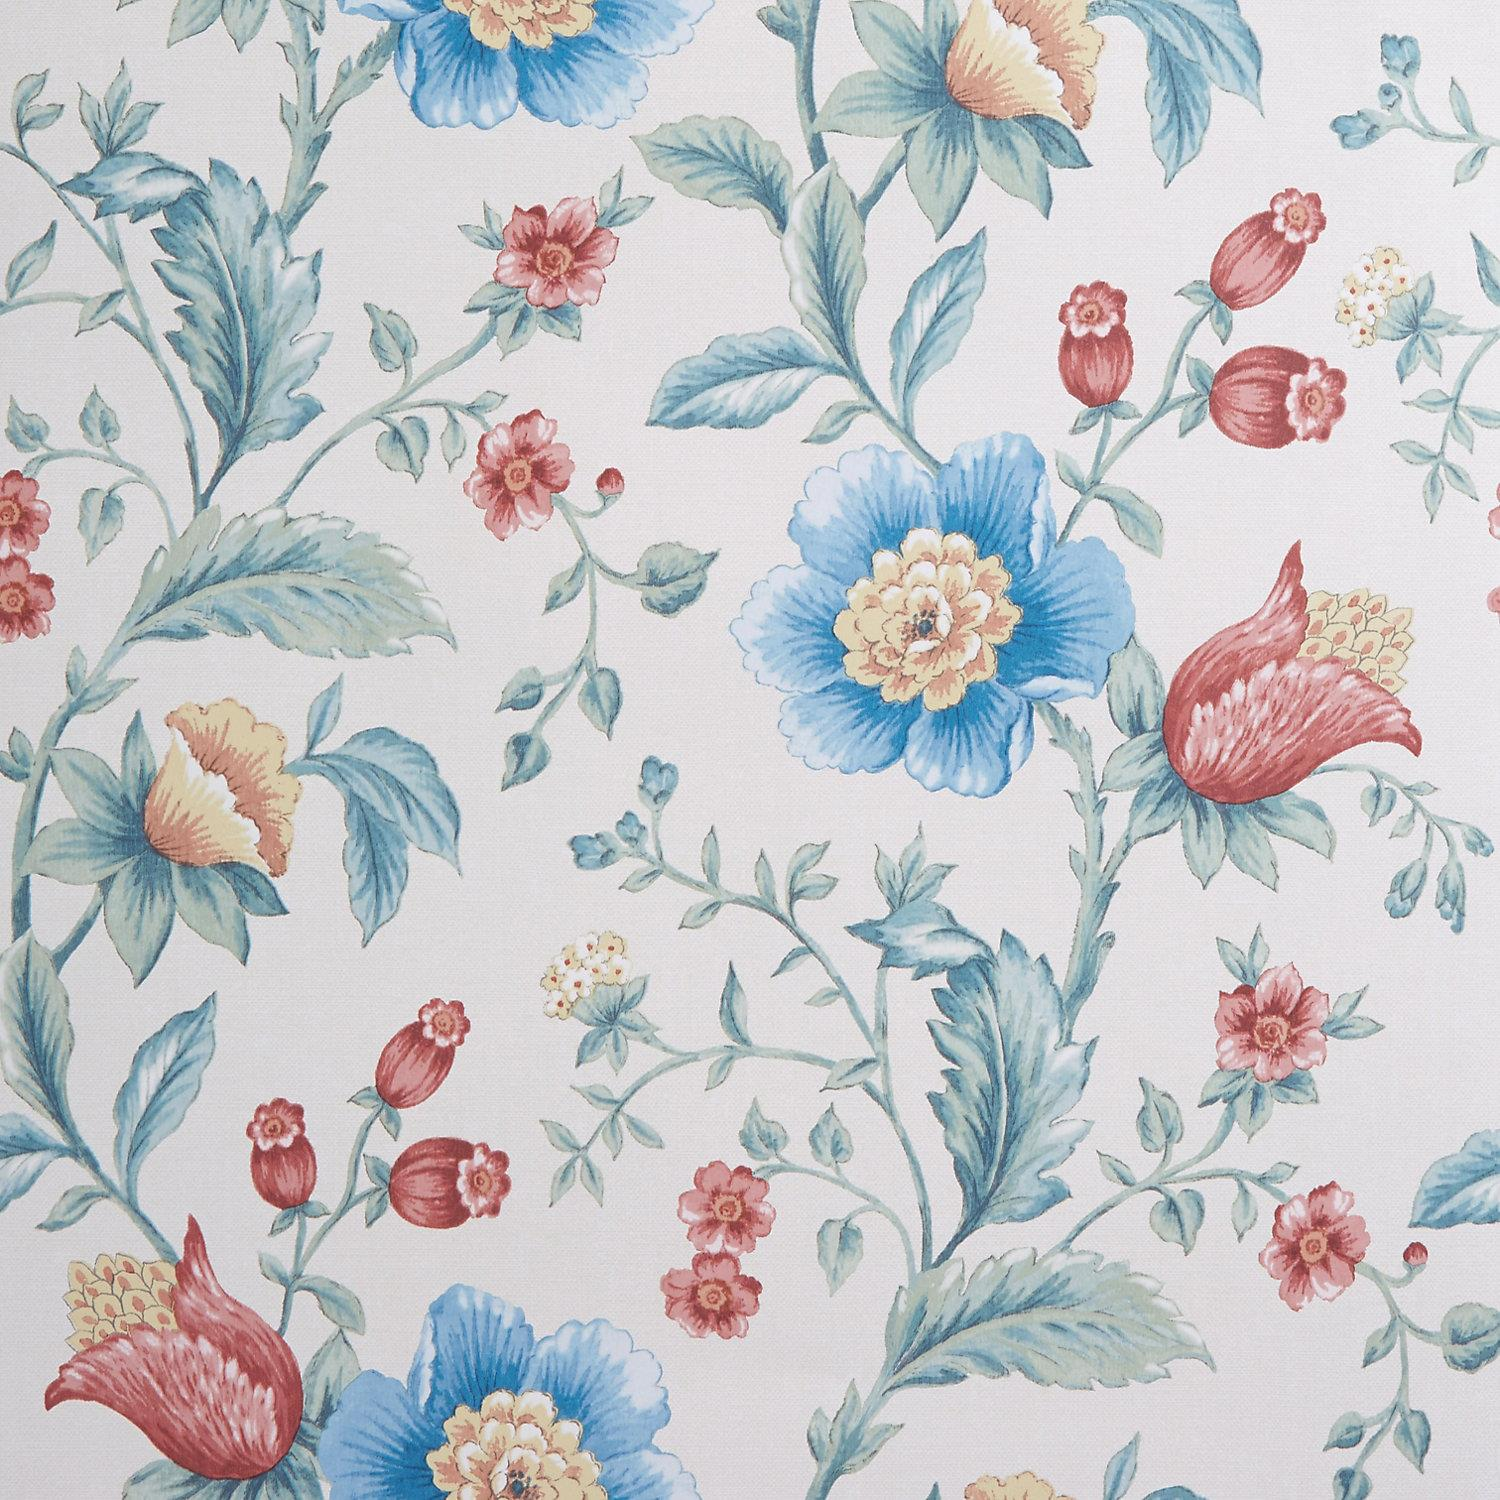 Vintage Floral Wallpaper Painterly Watercolour Effect Blue Green